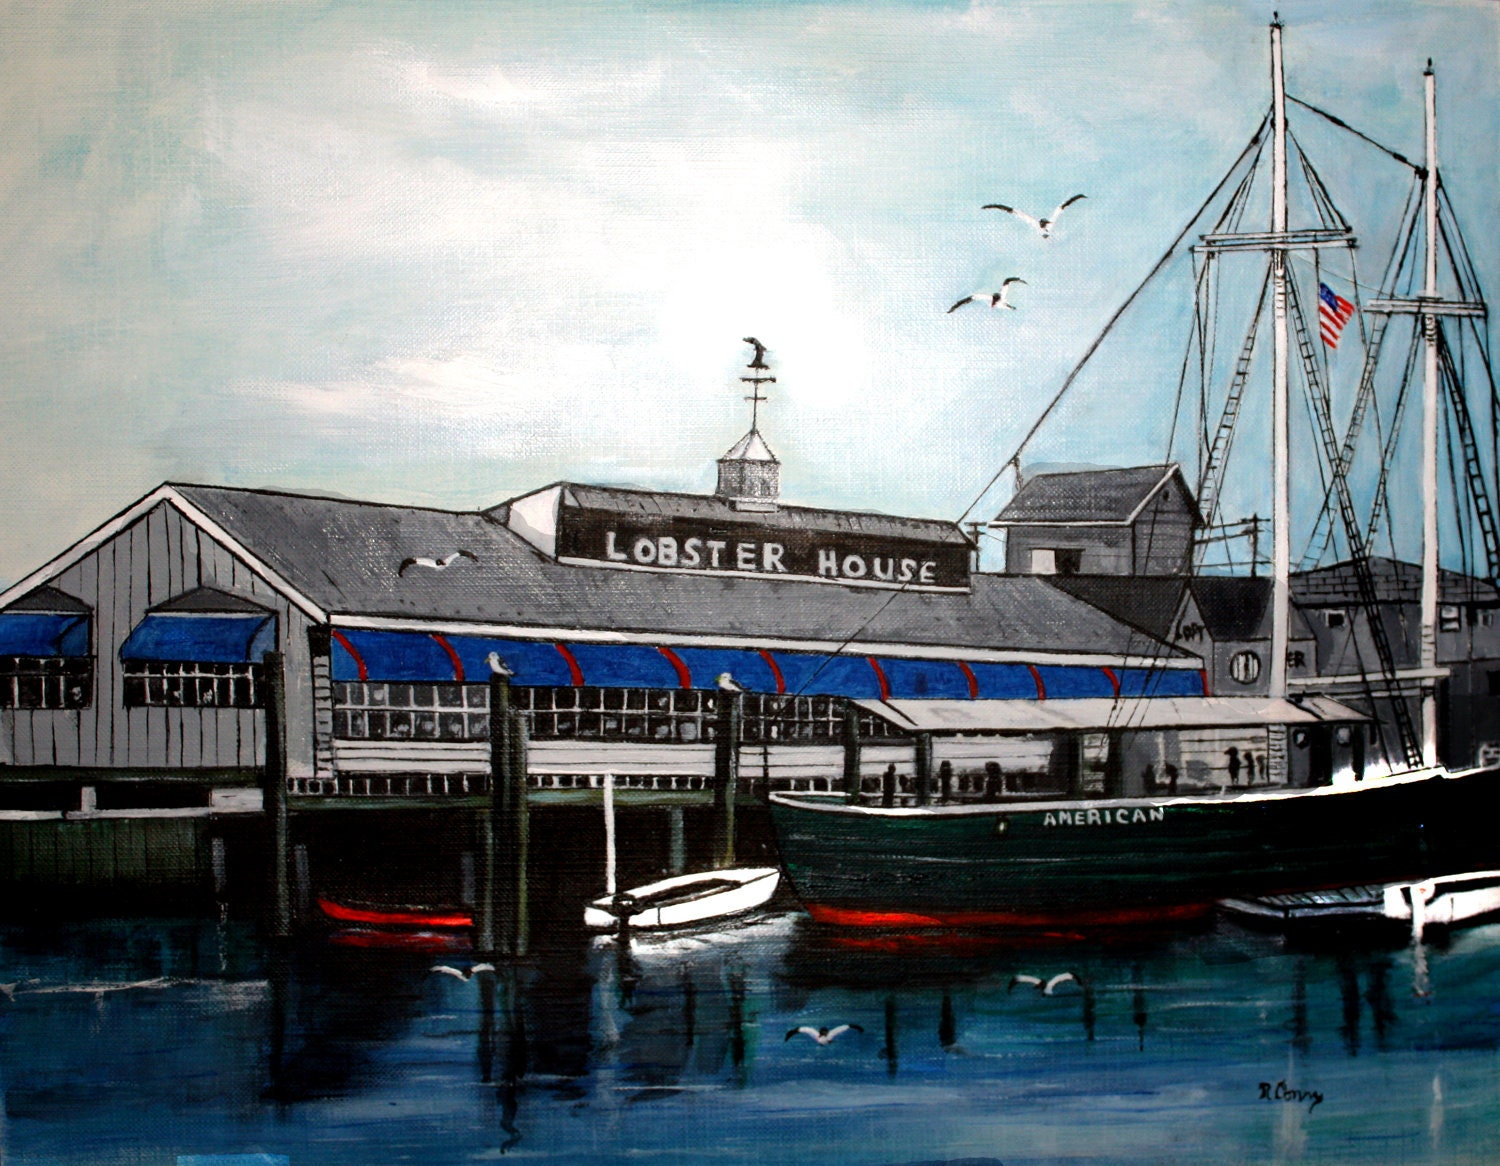 Lobster House SIGNED PRINTS 8 X 10 15.00 11 x 14 25.00